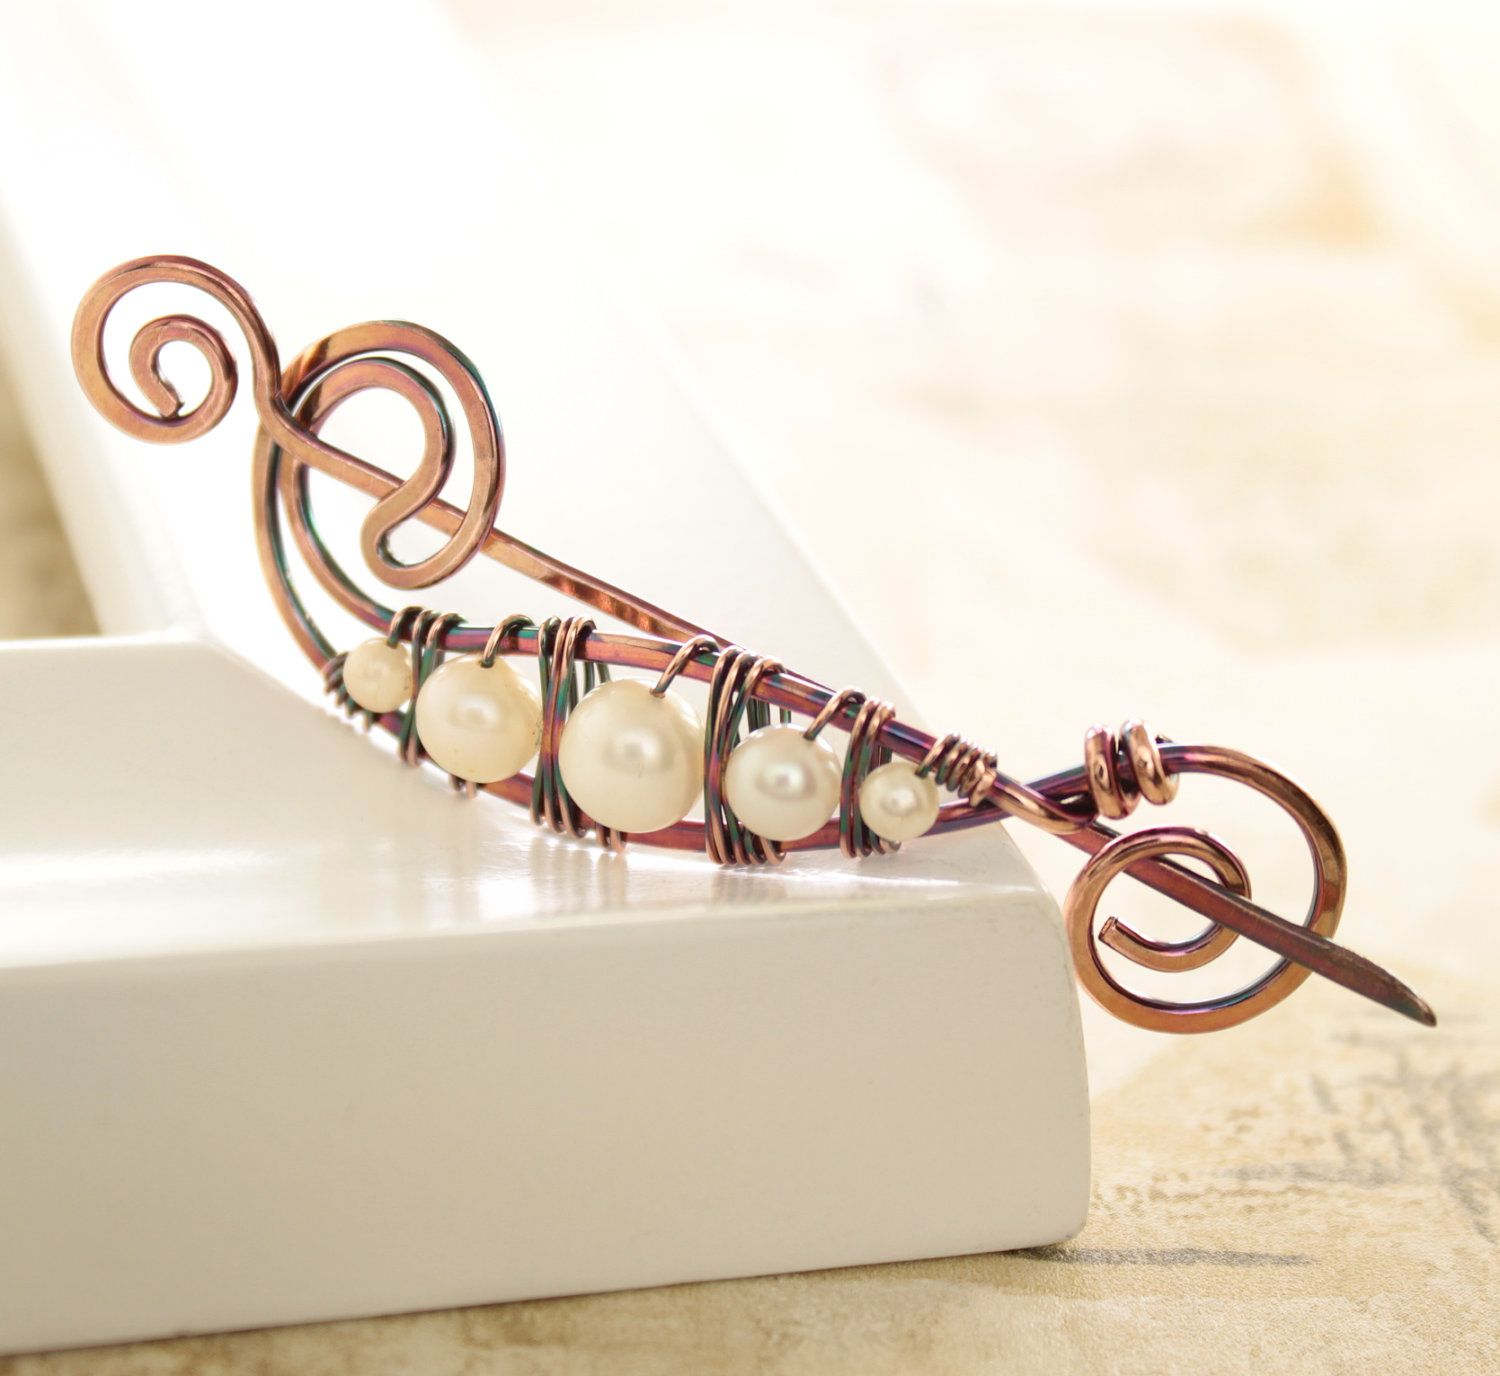 Shawl pin or scarf pin in peas in a pod design with copper and white ...